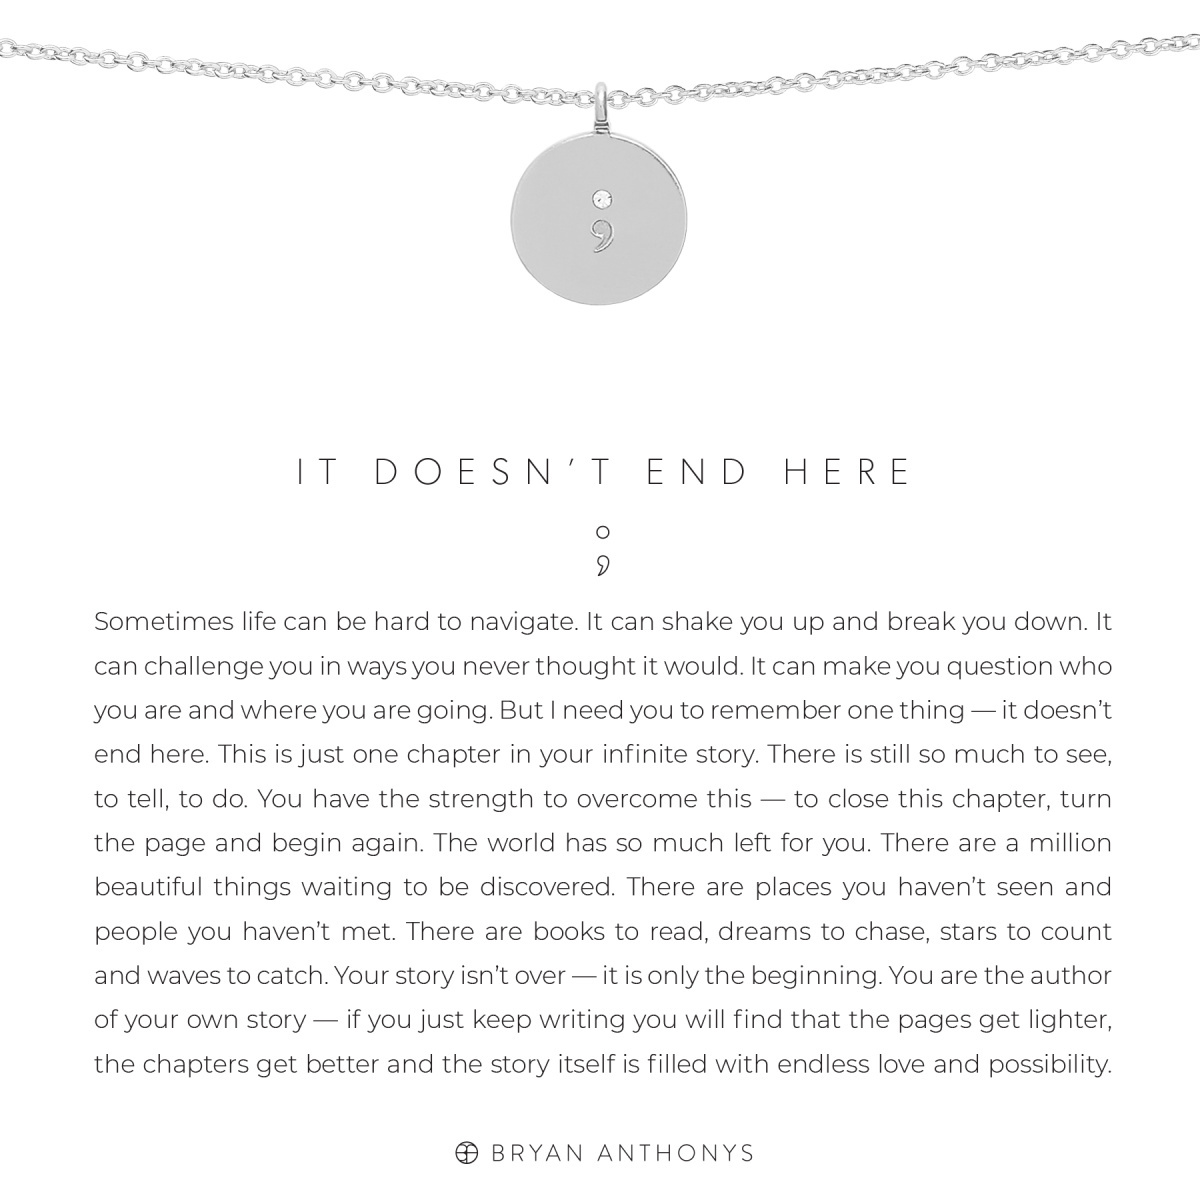 Bryan Anthonys Bryan Anthonys It Doesn't End Here Necklace